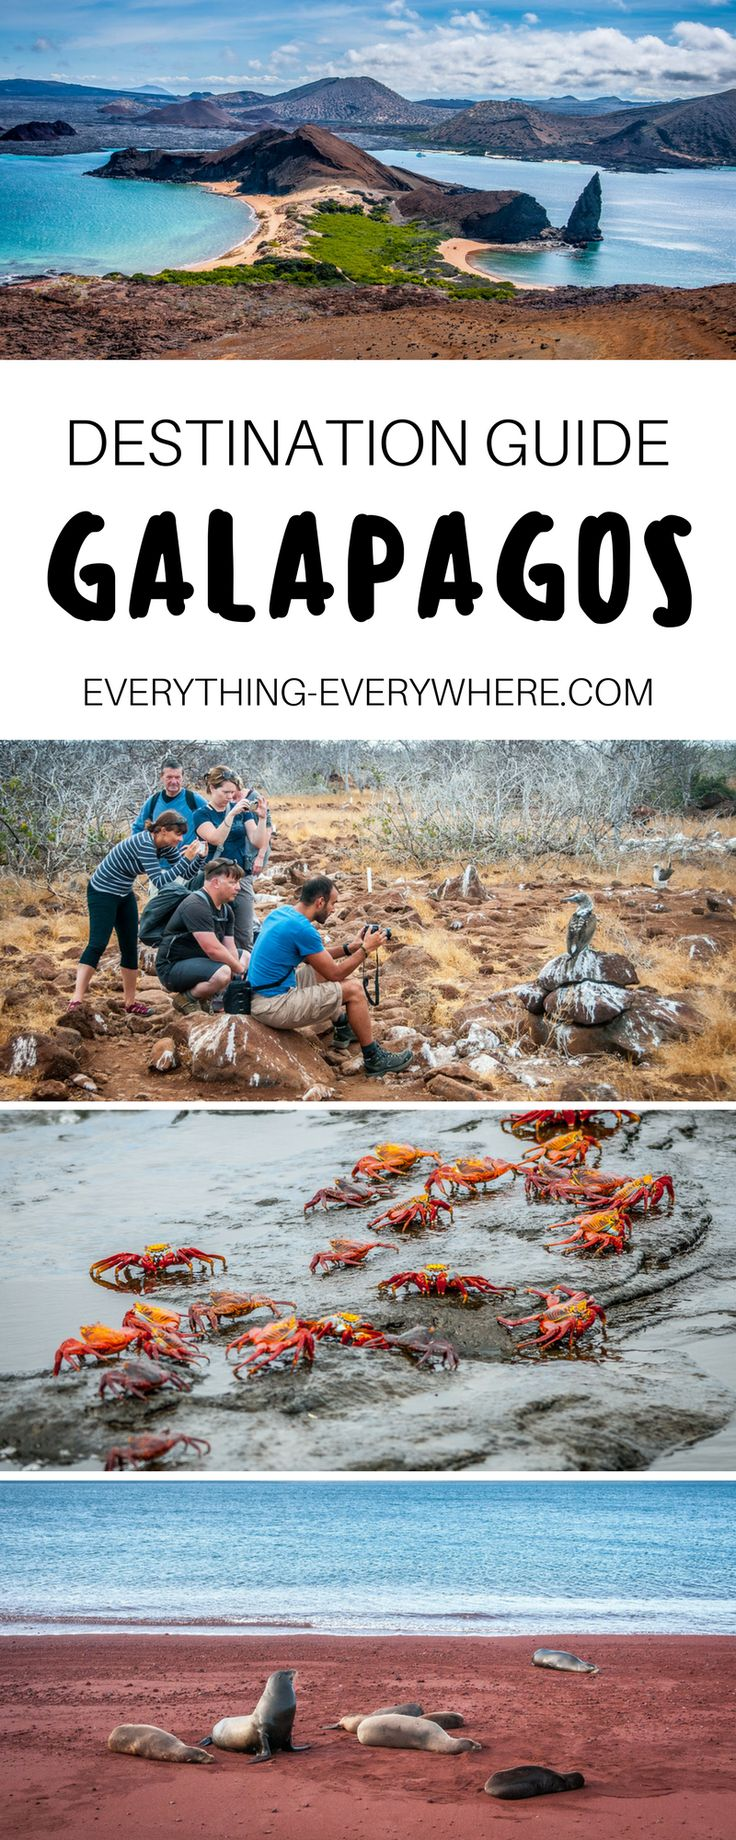 The ultimate guide to planning your trip to the Galapagos Islands, a world renowned UNESCO site located off the coast of Ecuador. Things to see and do + practical tips relating to airports, visas, and currency. Travel in South America. | Everything Everywhere Destination Guide